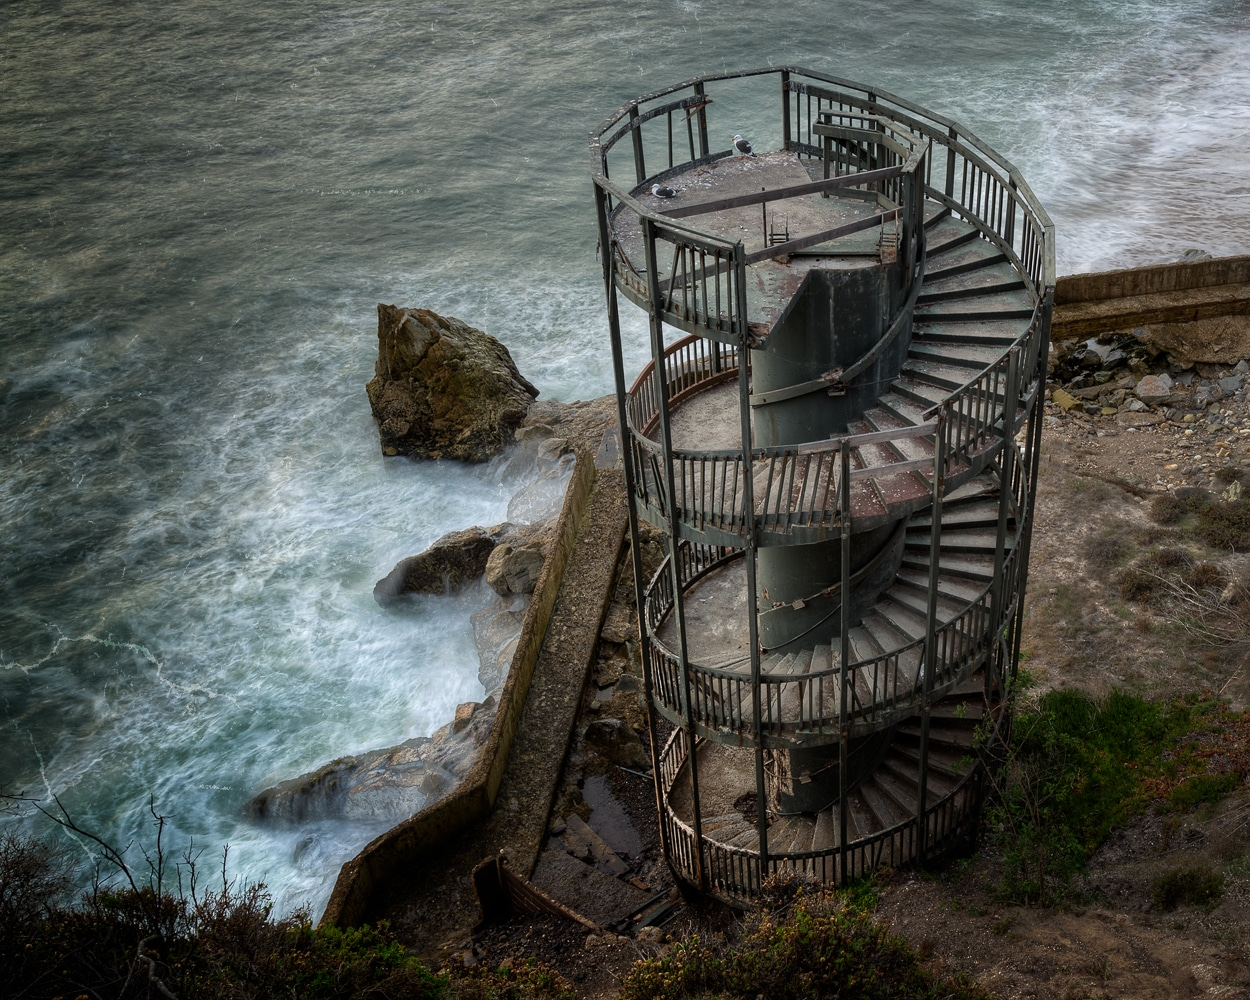 Stairway to Nowhere | Abandoned Spiral Staircase | Pismo Beach | California